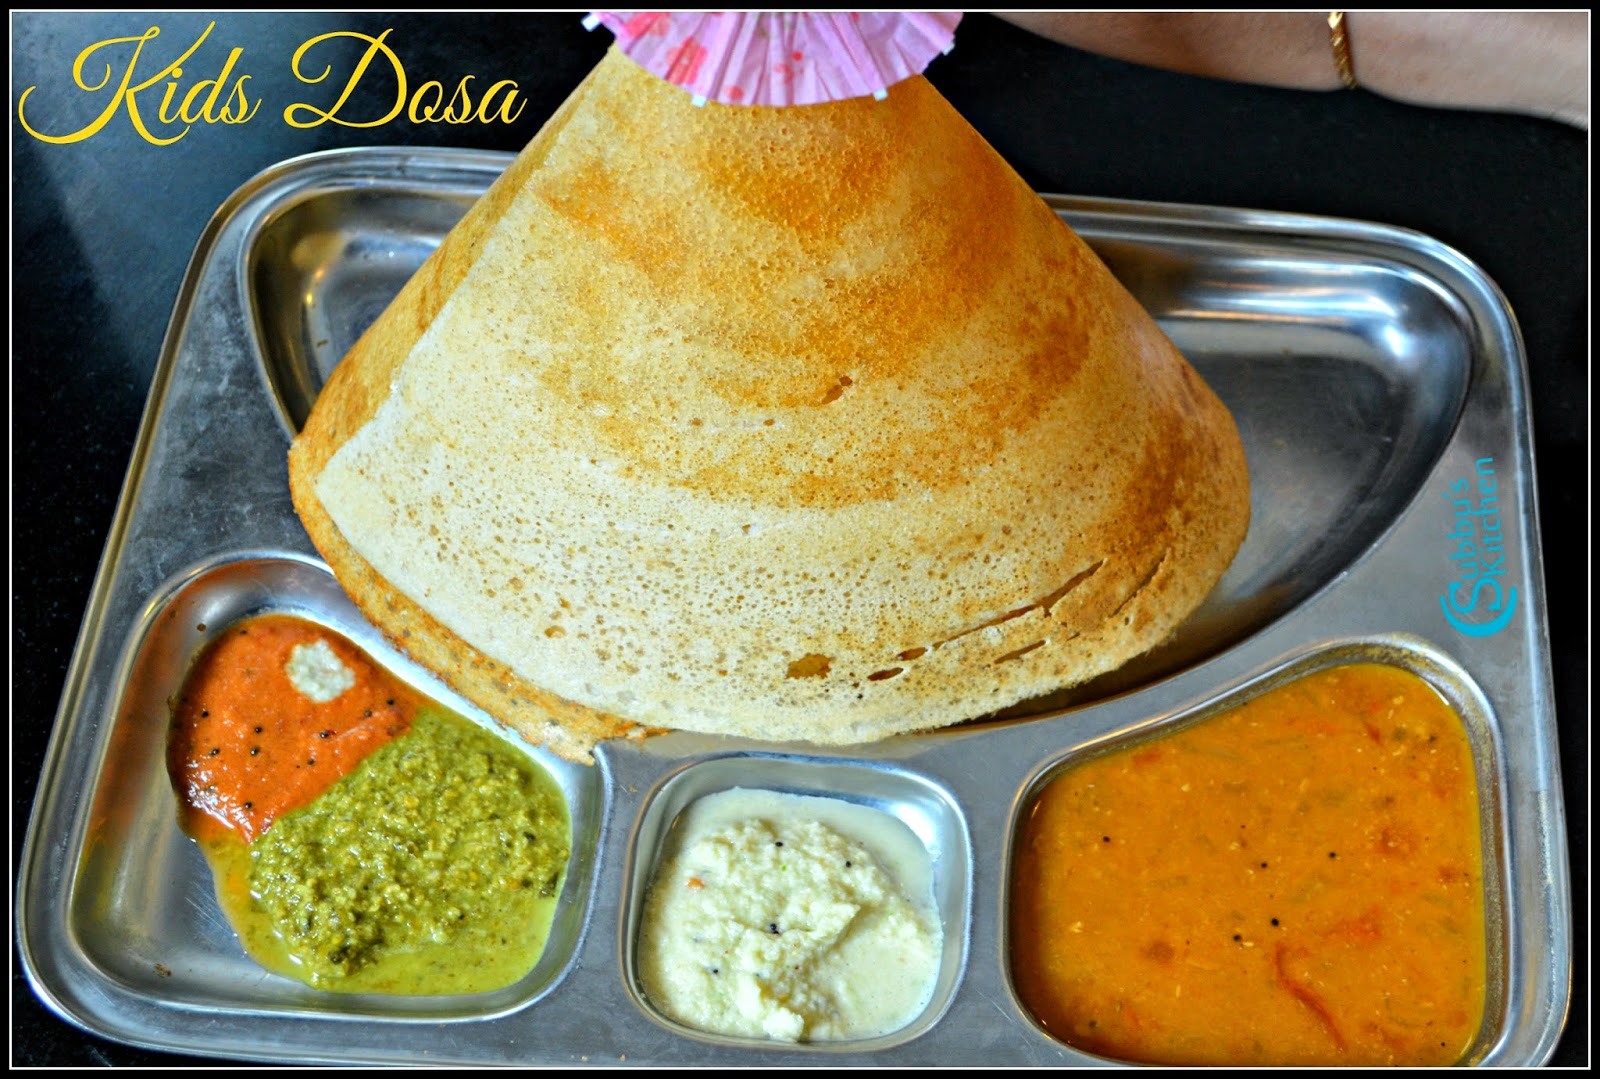 Homemade Ghee Roast Dosa Recipe | Kids Dosa Recipe